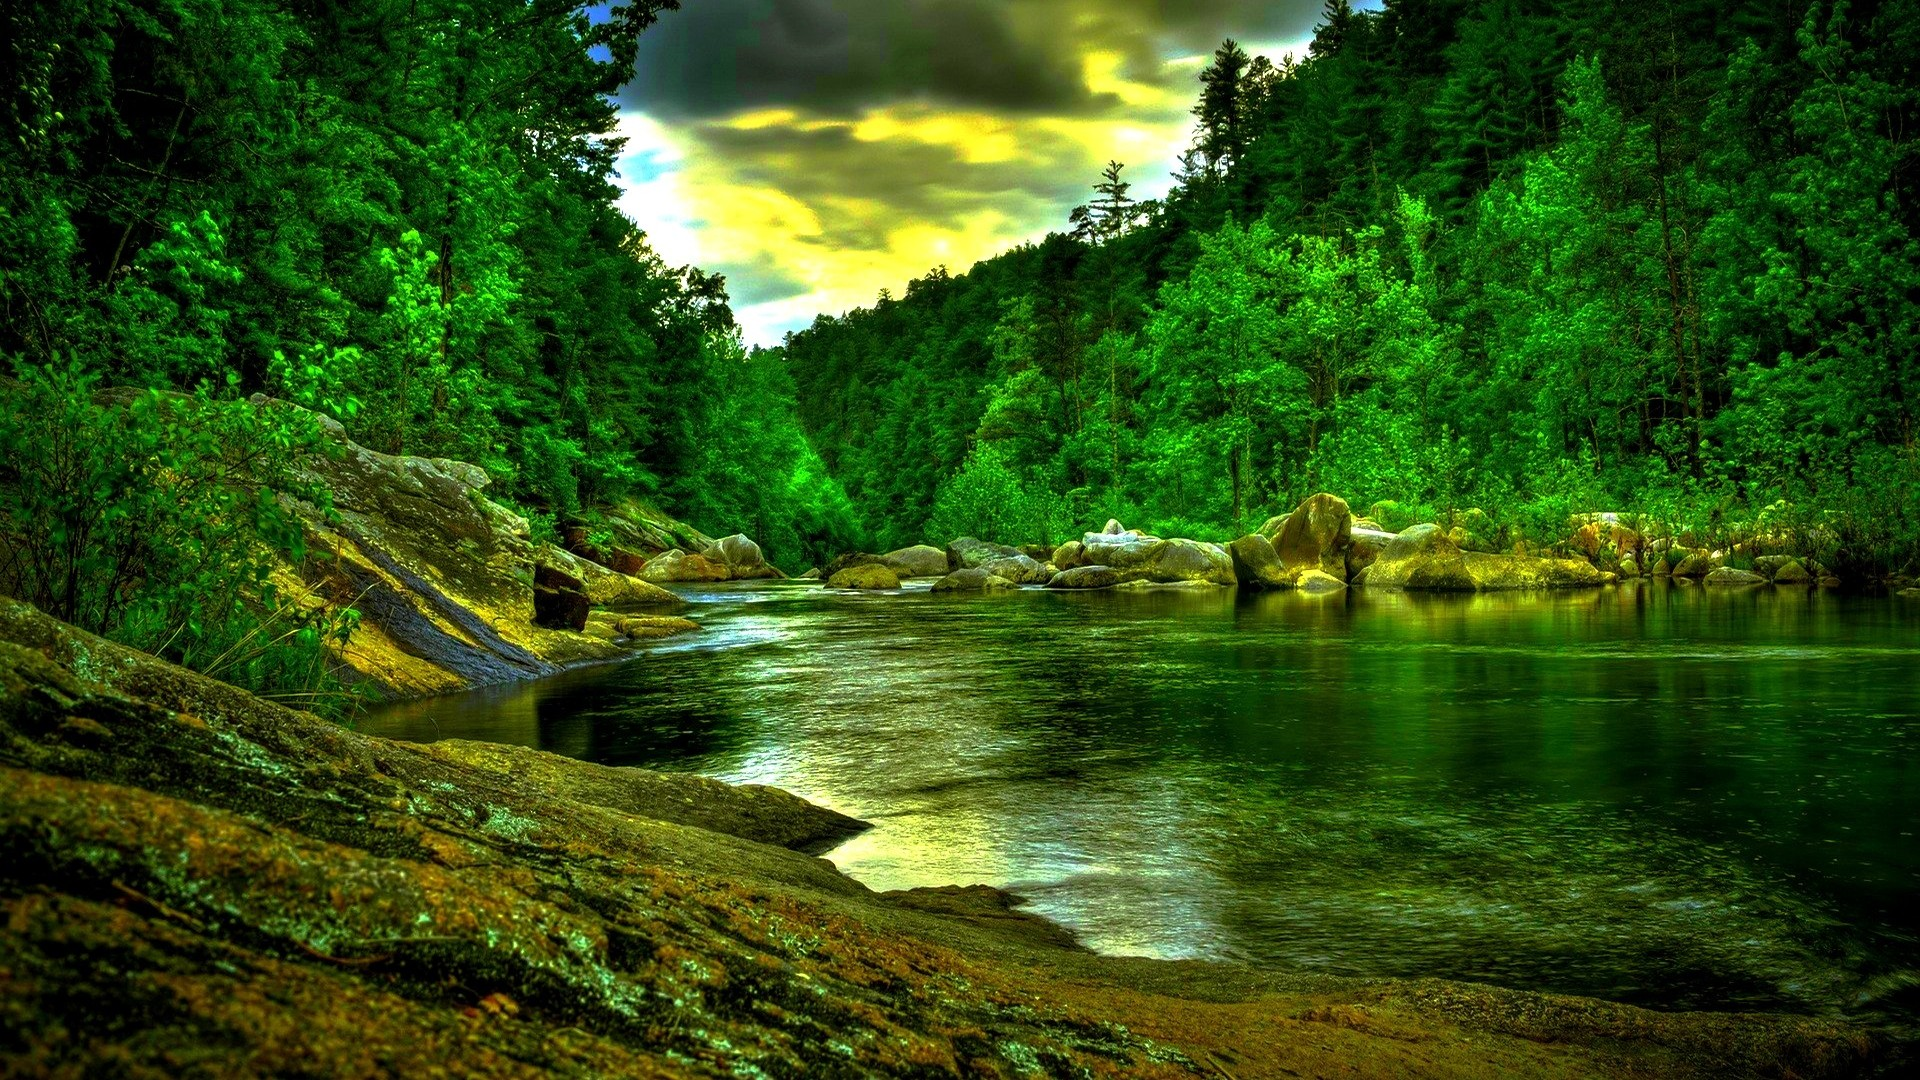 Download Beautiful Green Forest River Wide HD Wallpaper Search more 1920x1080